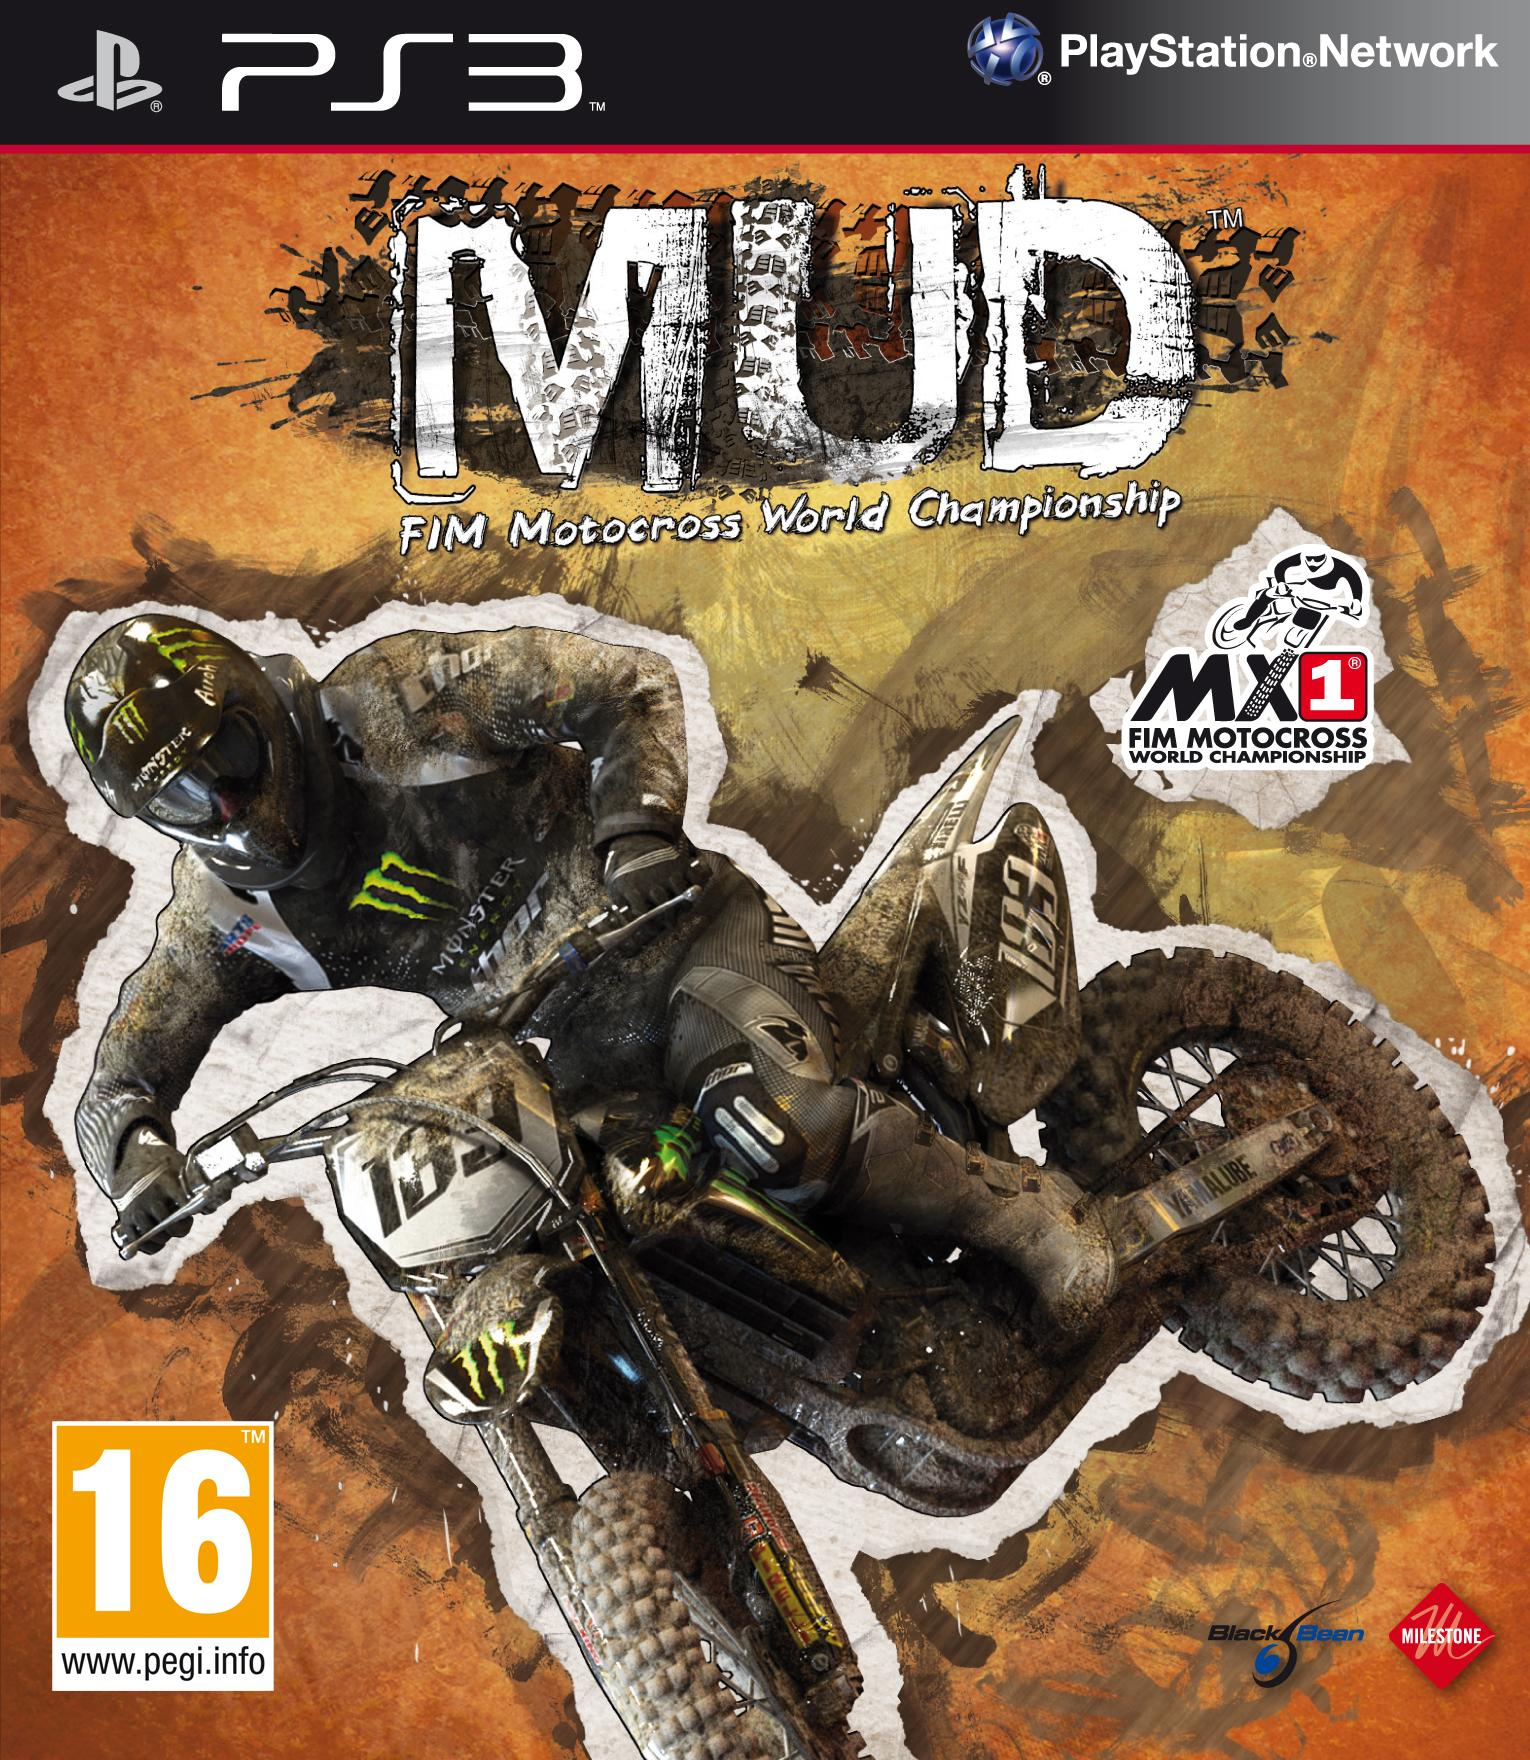 Mud Fim Motorcross World Championship PS3